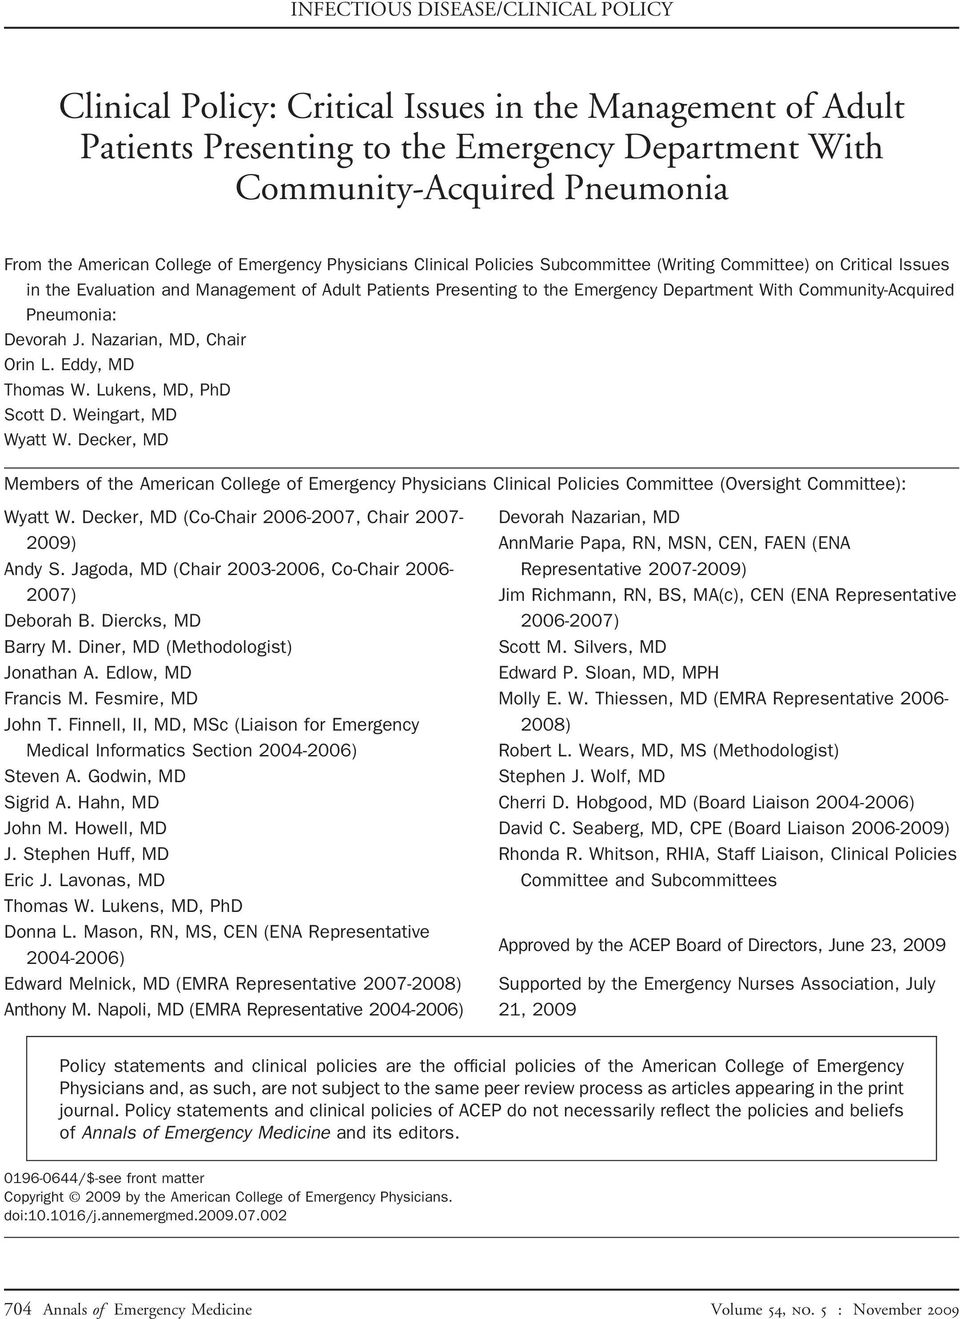 Community-Acquired Pneumonia: Devorah J. Nazarian, MD, Chair Orin L. Eddy, MD Thomas W. Lukens, MD, PhD Scott D. Weingart, MD Wyatt W.